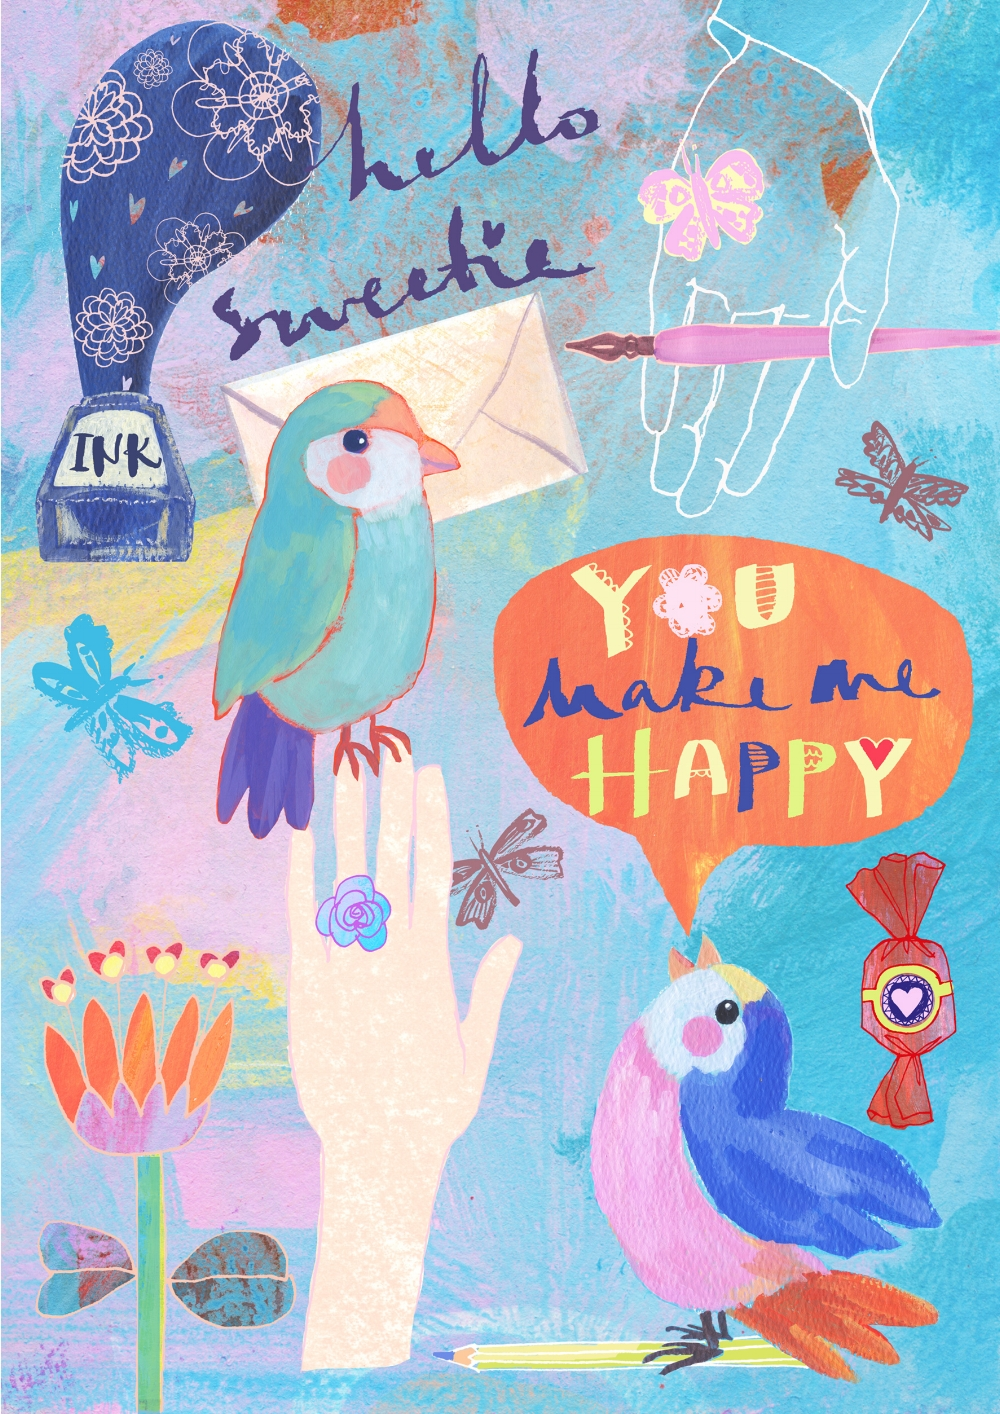 You can buy this card at my shop on https://www.thortful.com/creator/gabriellabuckingham